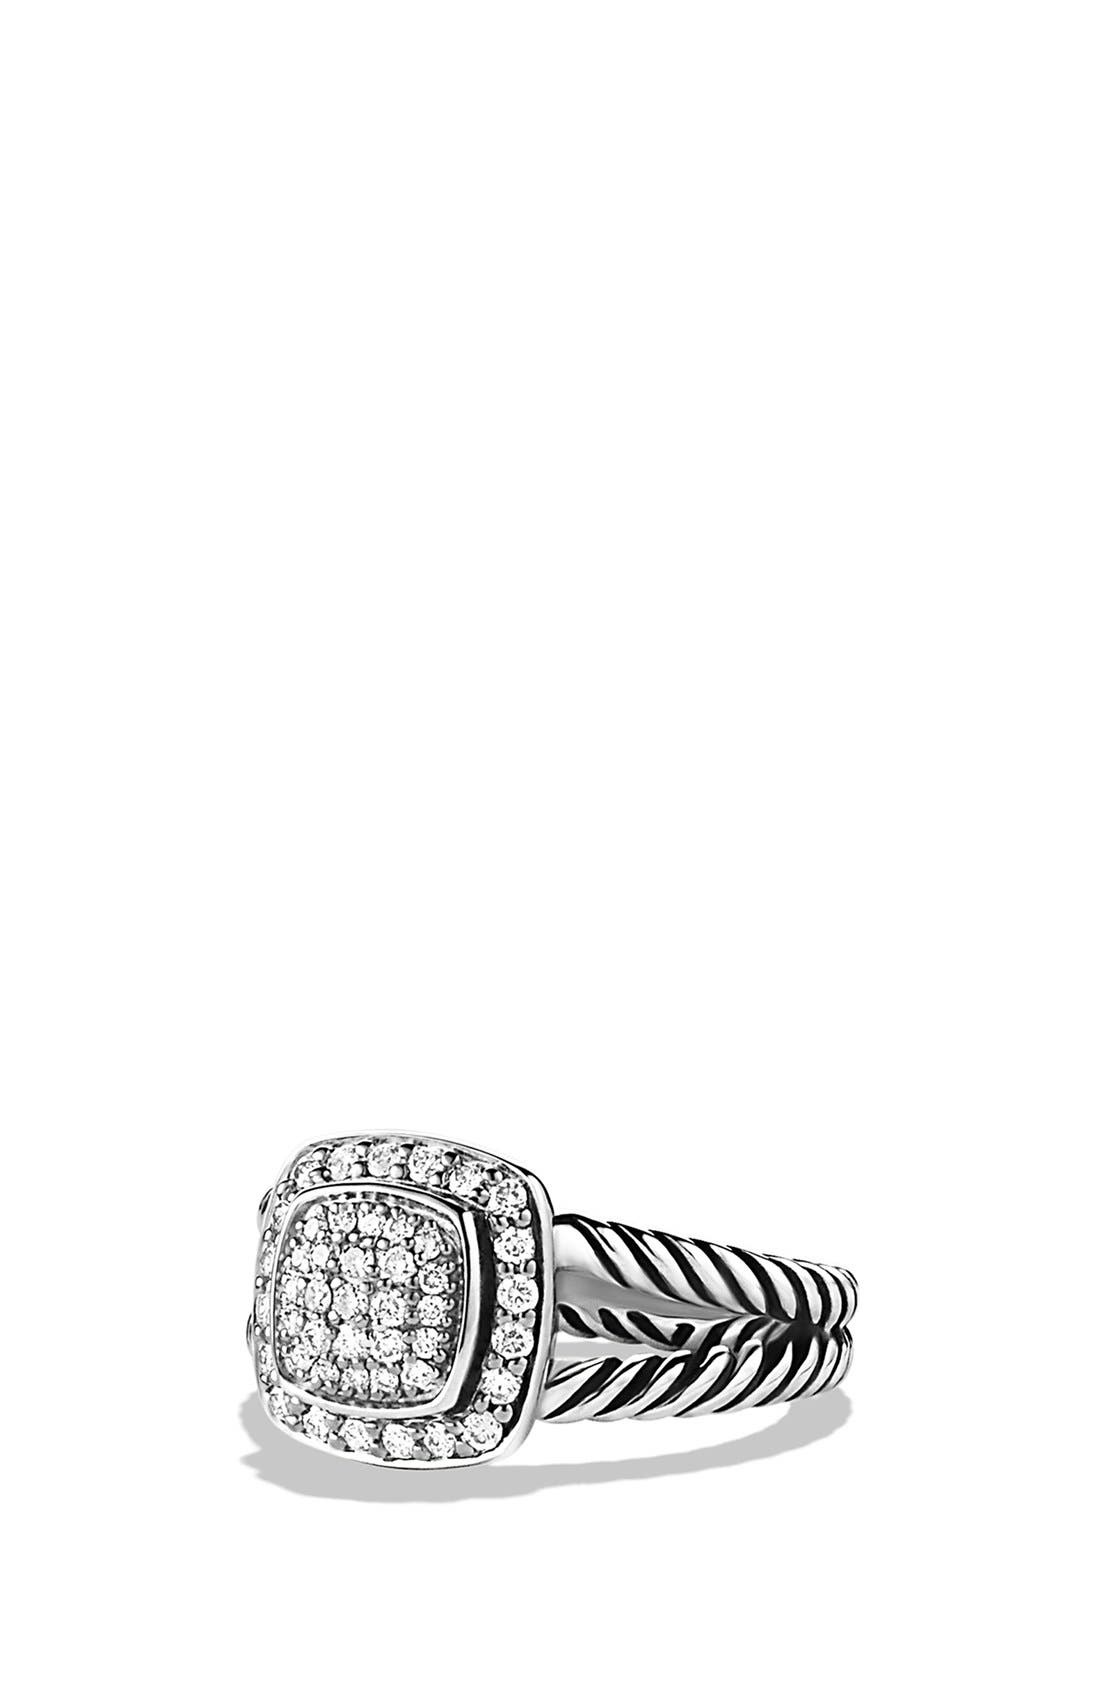 DAVID YURMAN Albion Petite Ring with Diamonds